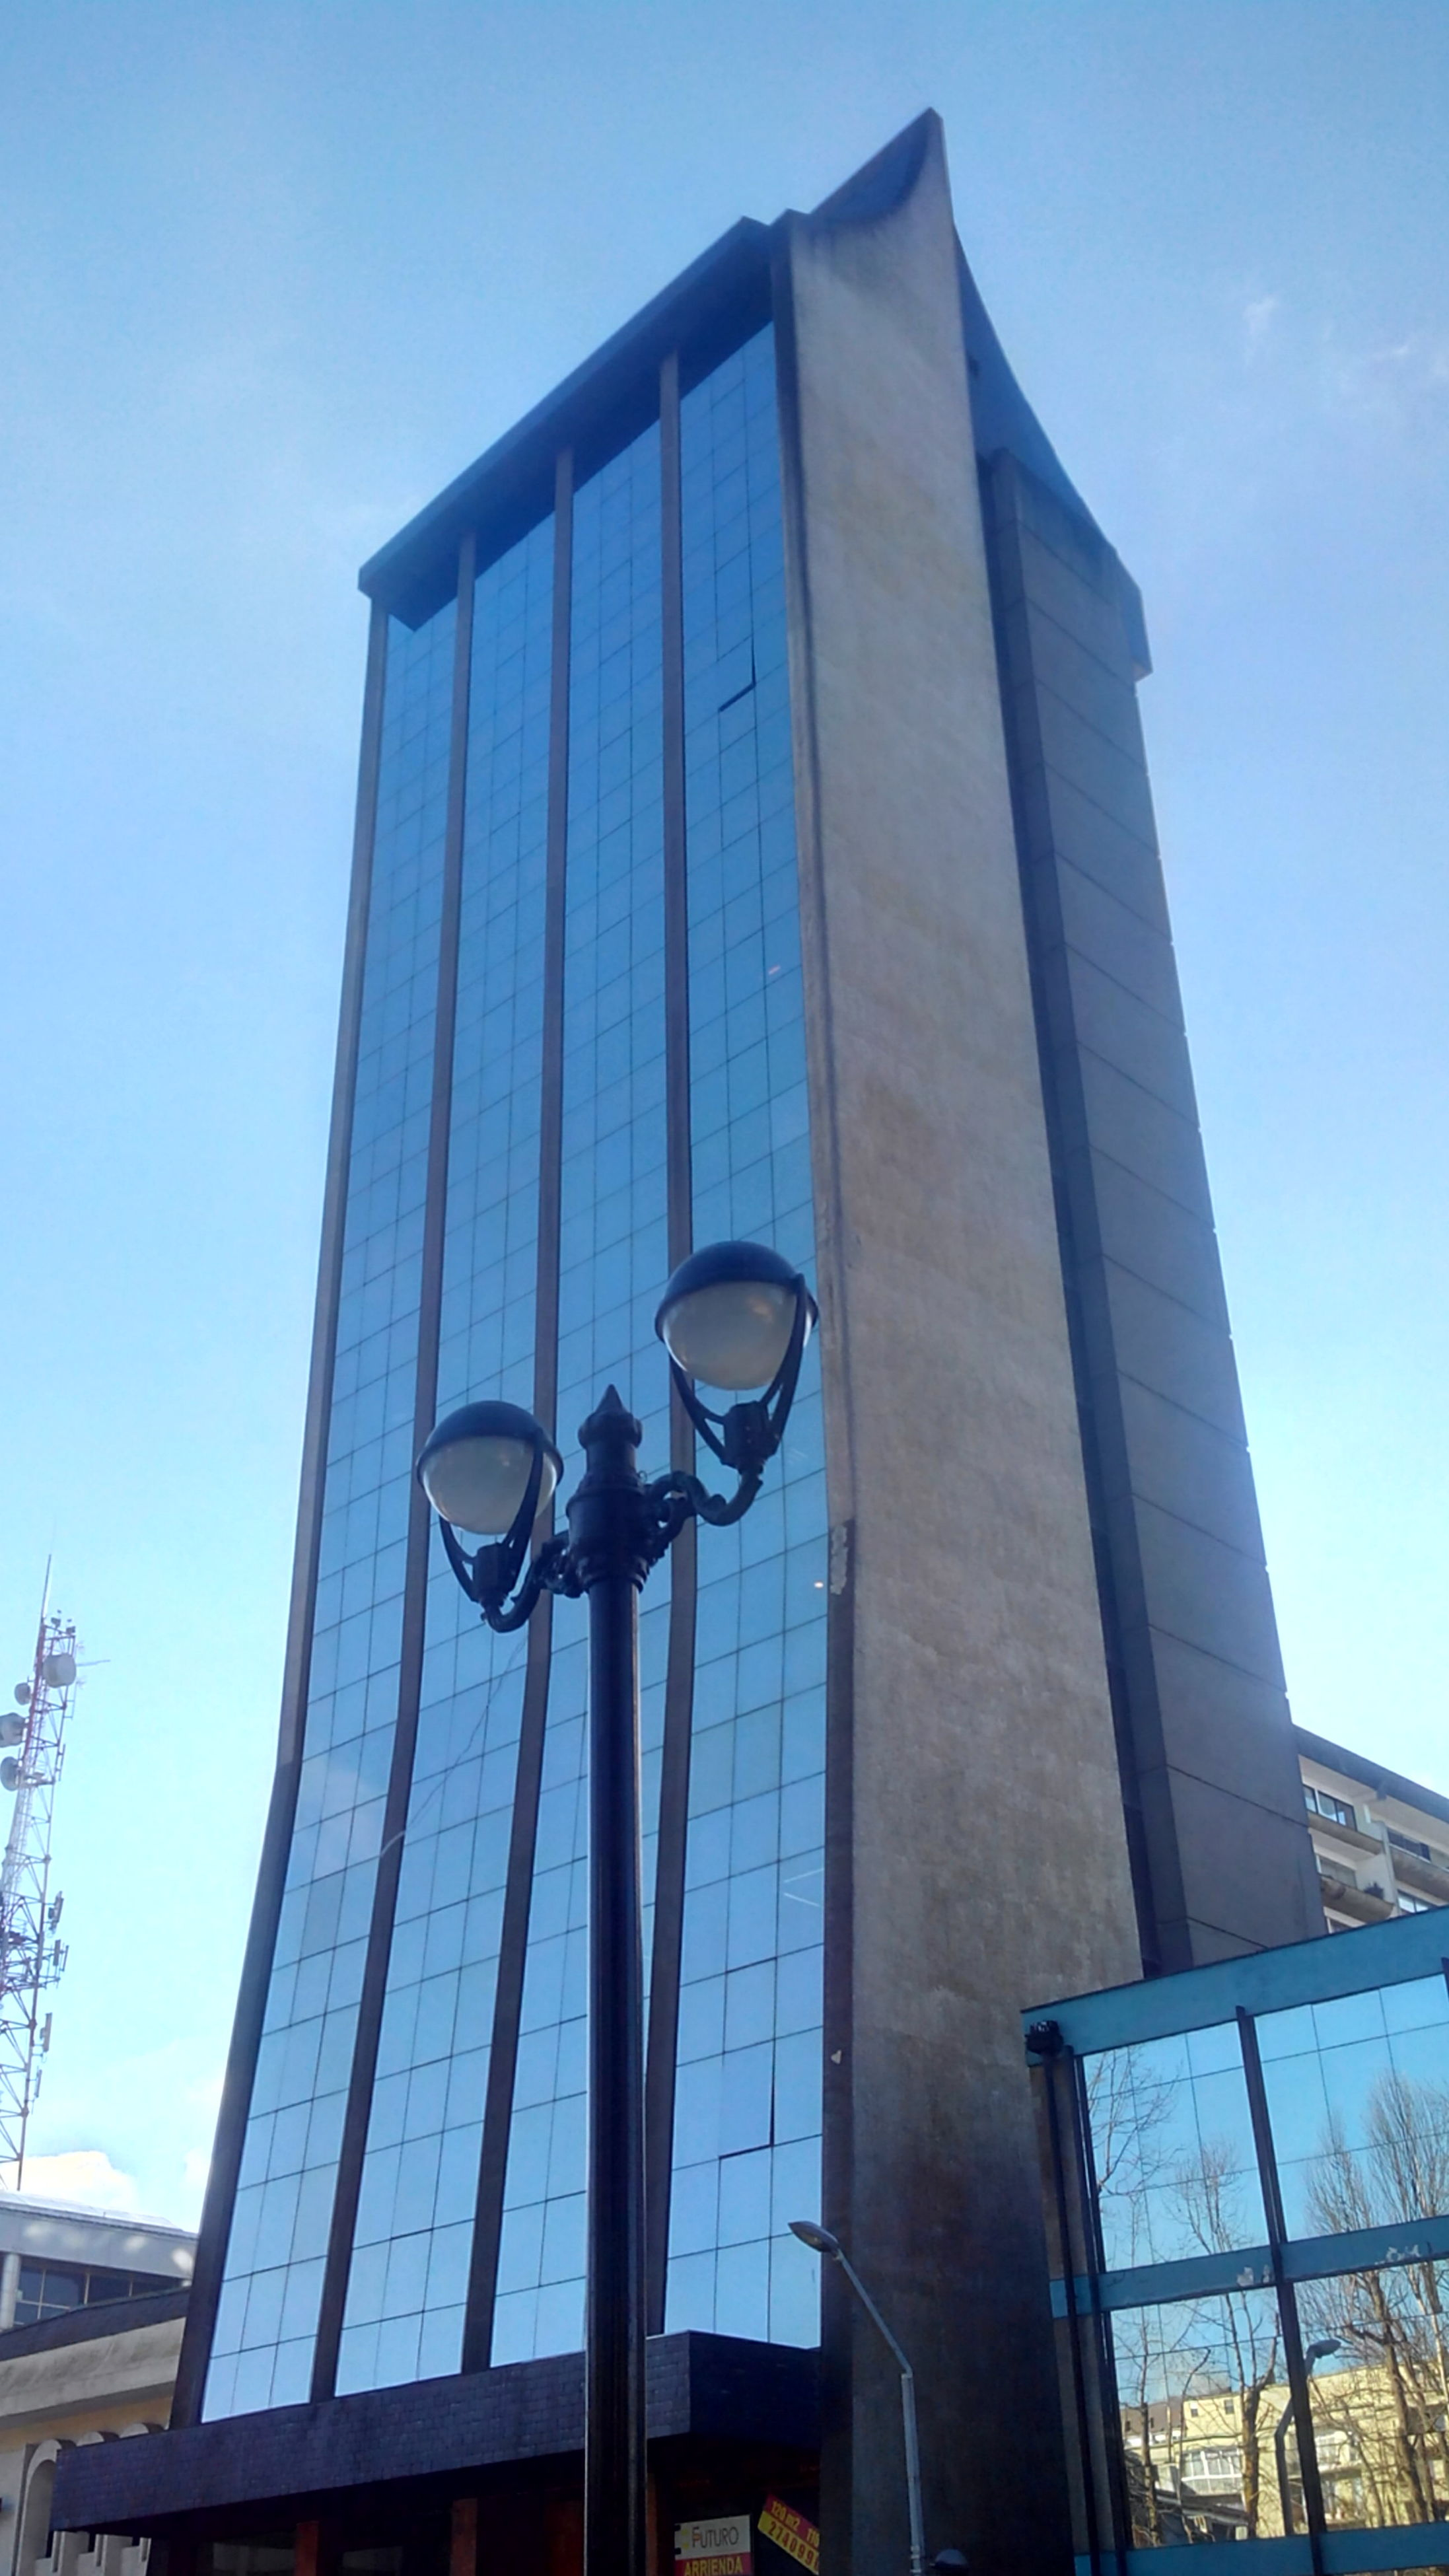 low angle view, building exterior, architecture, built structure, city, building, street light, office building, sky, tall - high, clear sky, modern, blue, tower, skyscraper, day, outdoors, no people, sunlight, glass - material